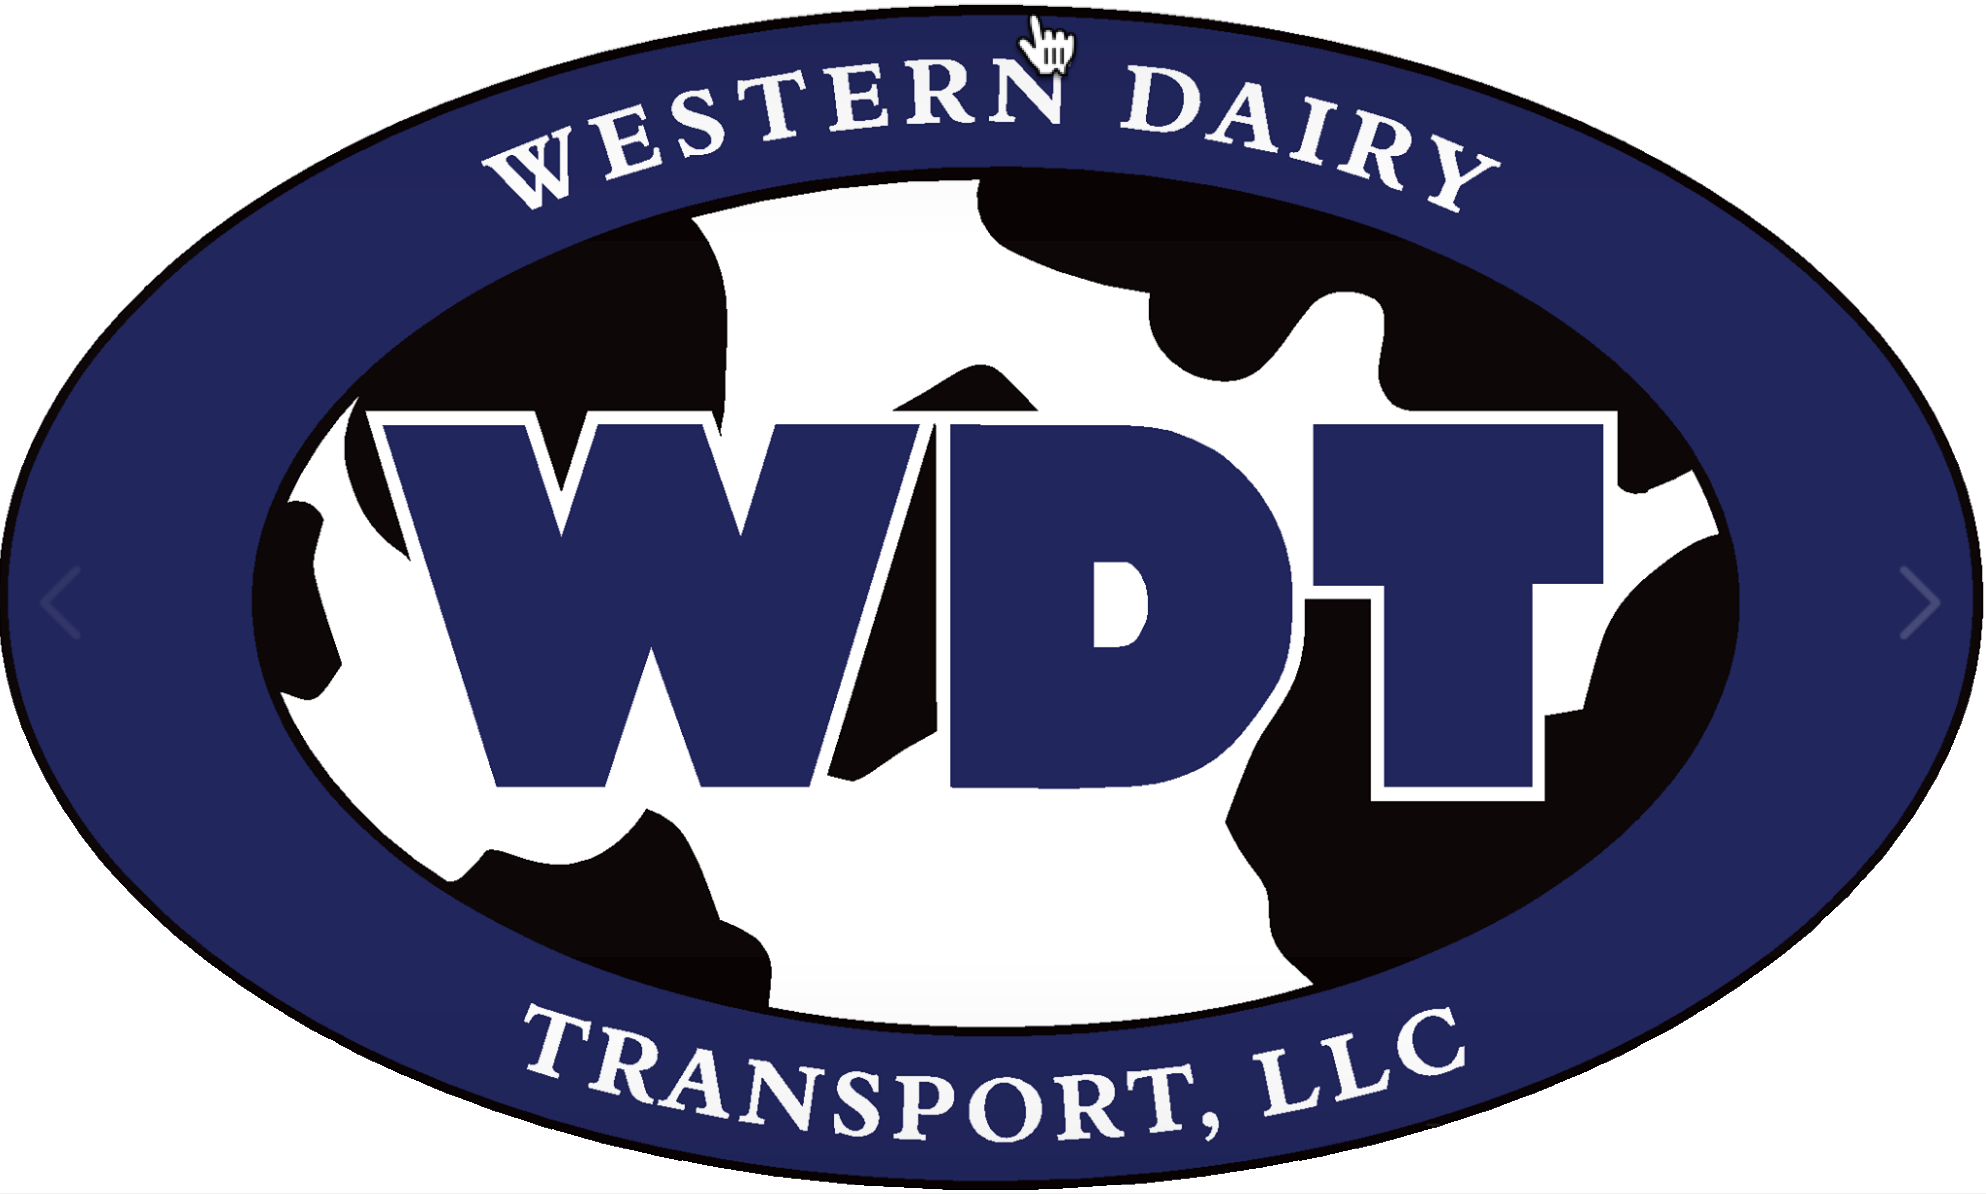 Western Dairy Transport sends ransomware down the road